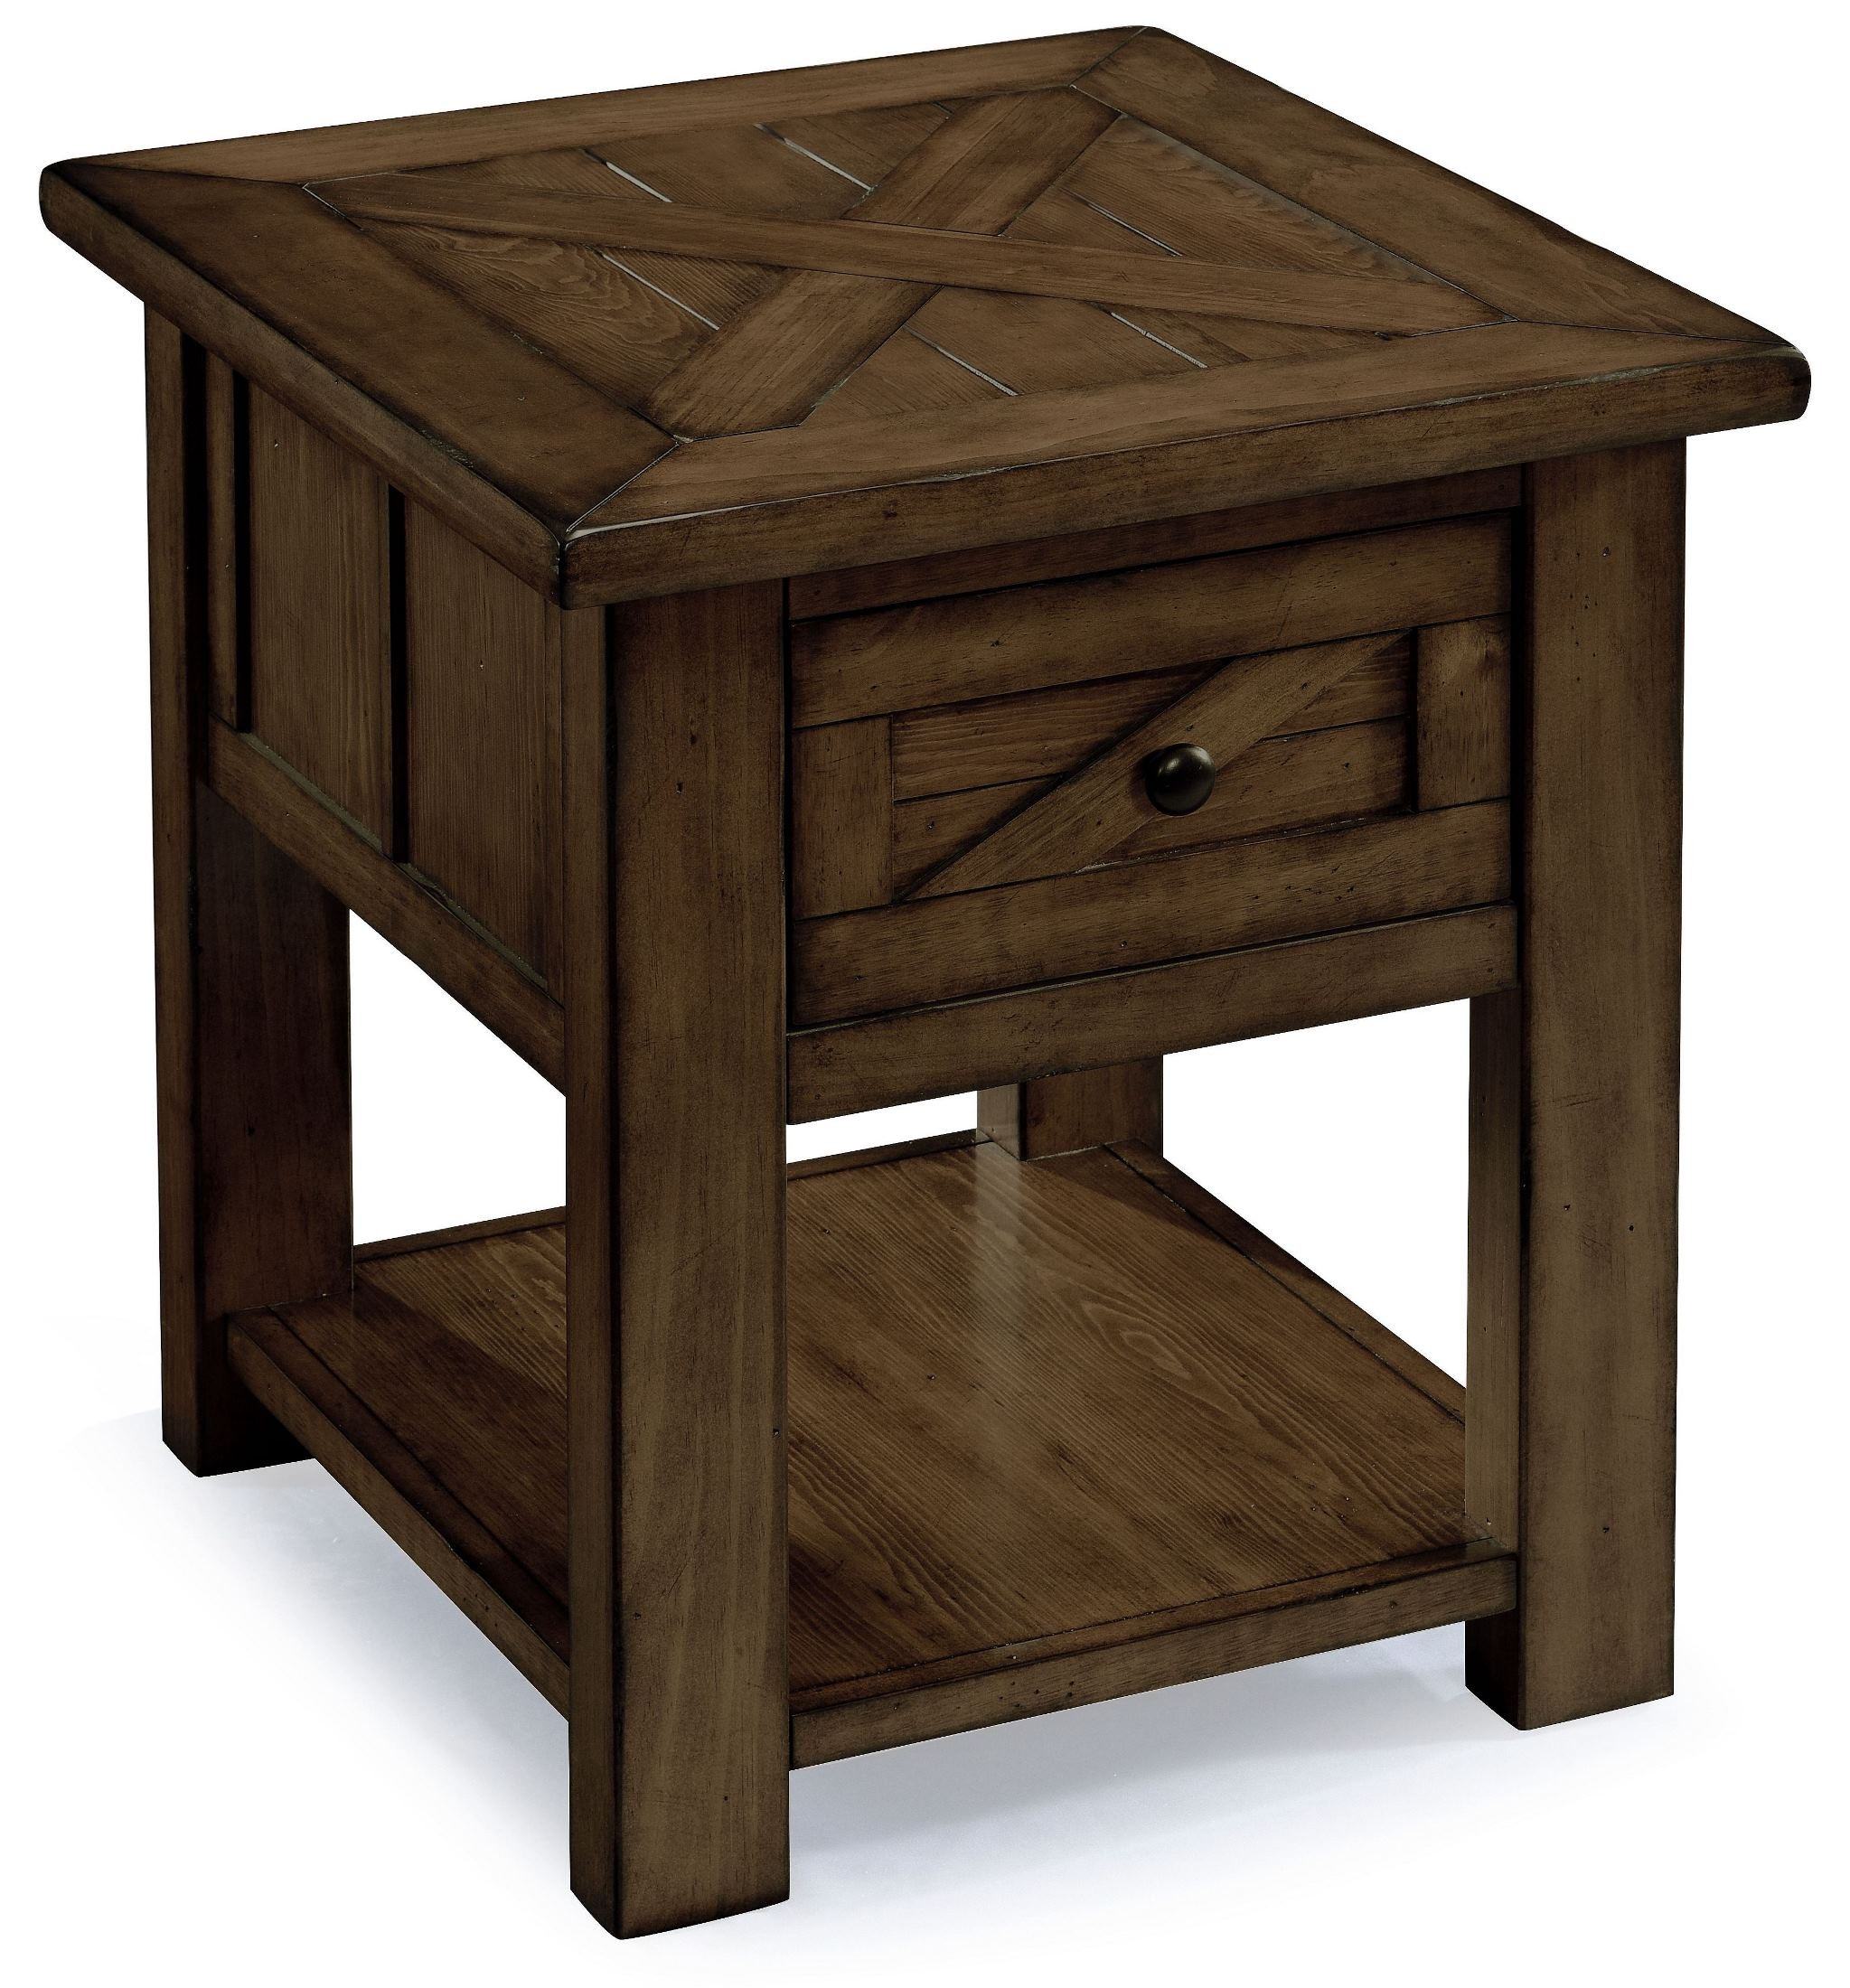 Fraser Rustic Pine Wood Rectangular End Table From